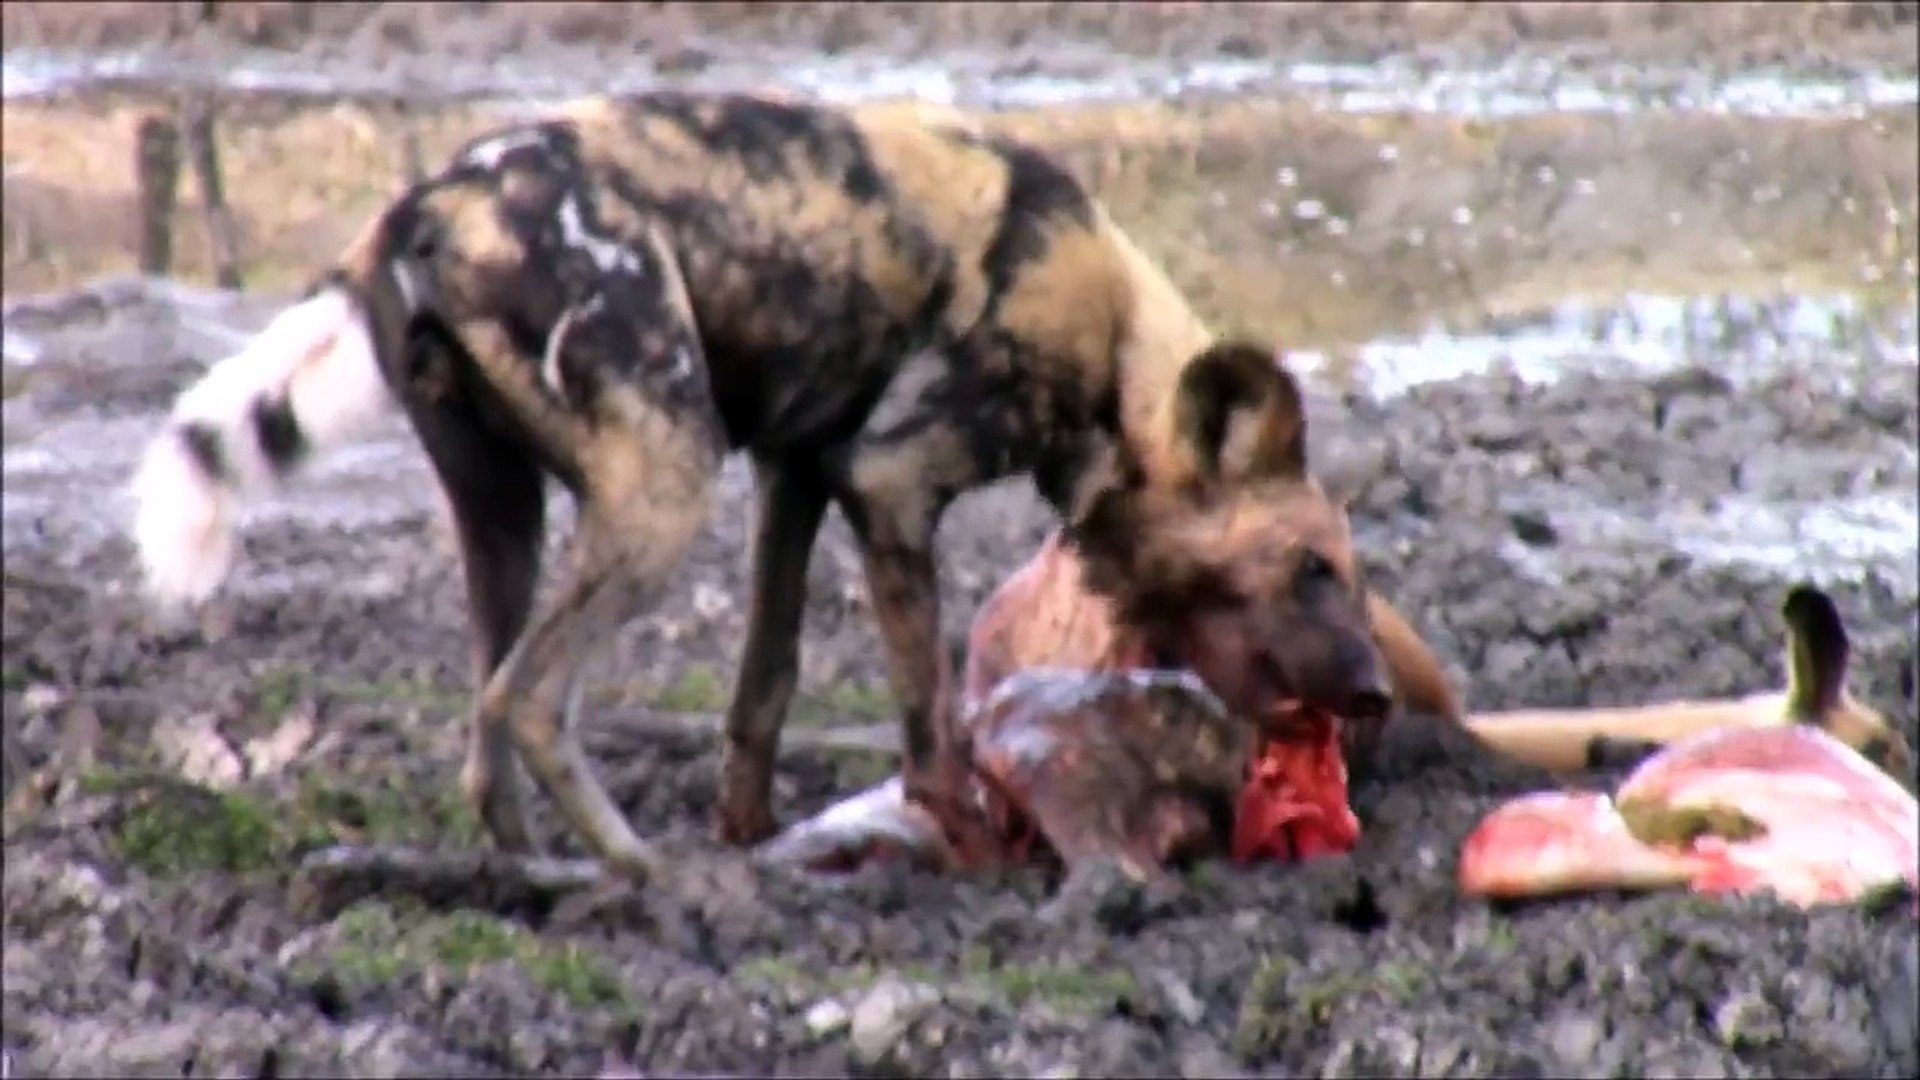 wild dogs eating live animals, wild dogs eating deer alive, watch latest sightings animatedcams vide